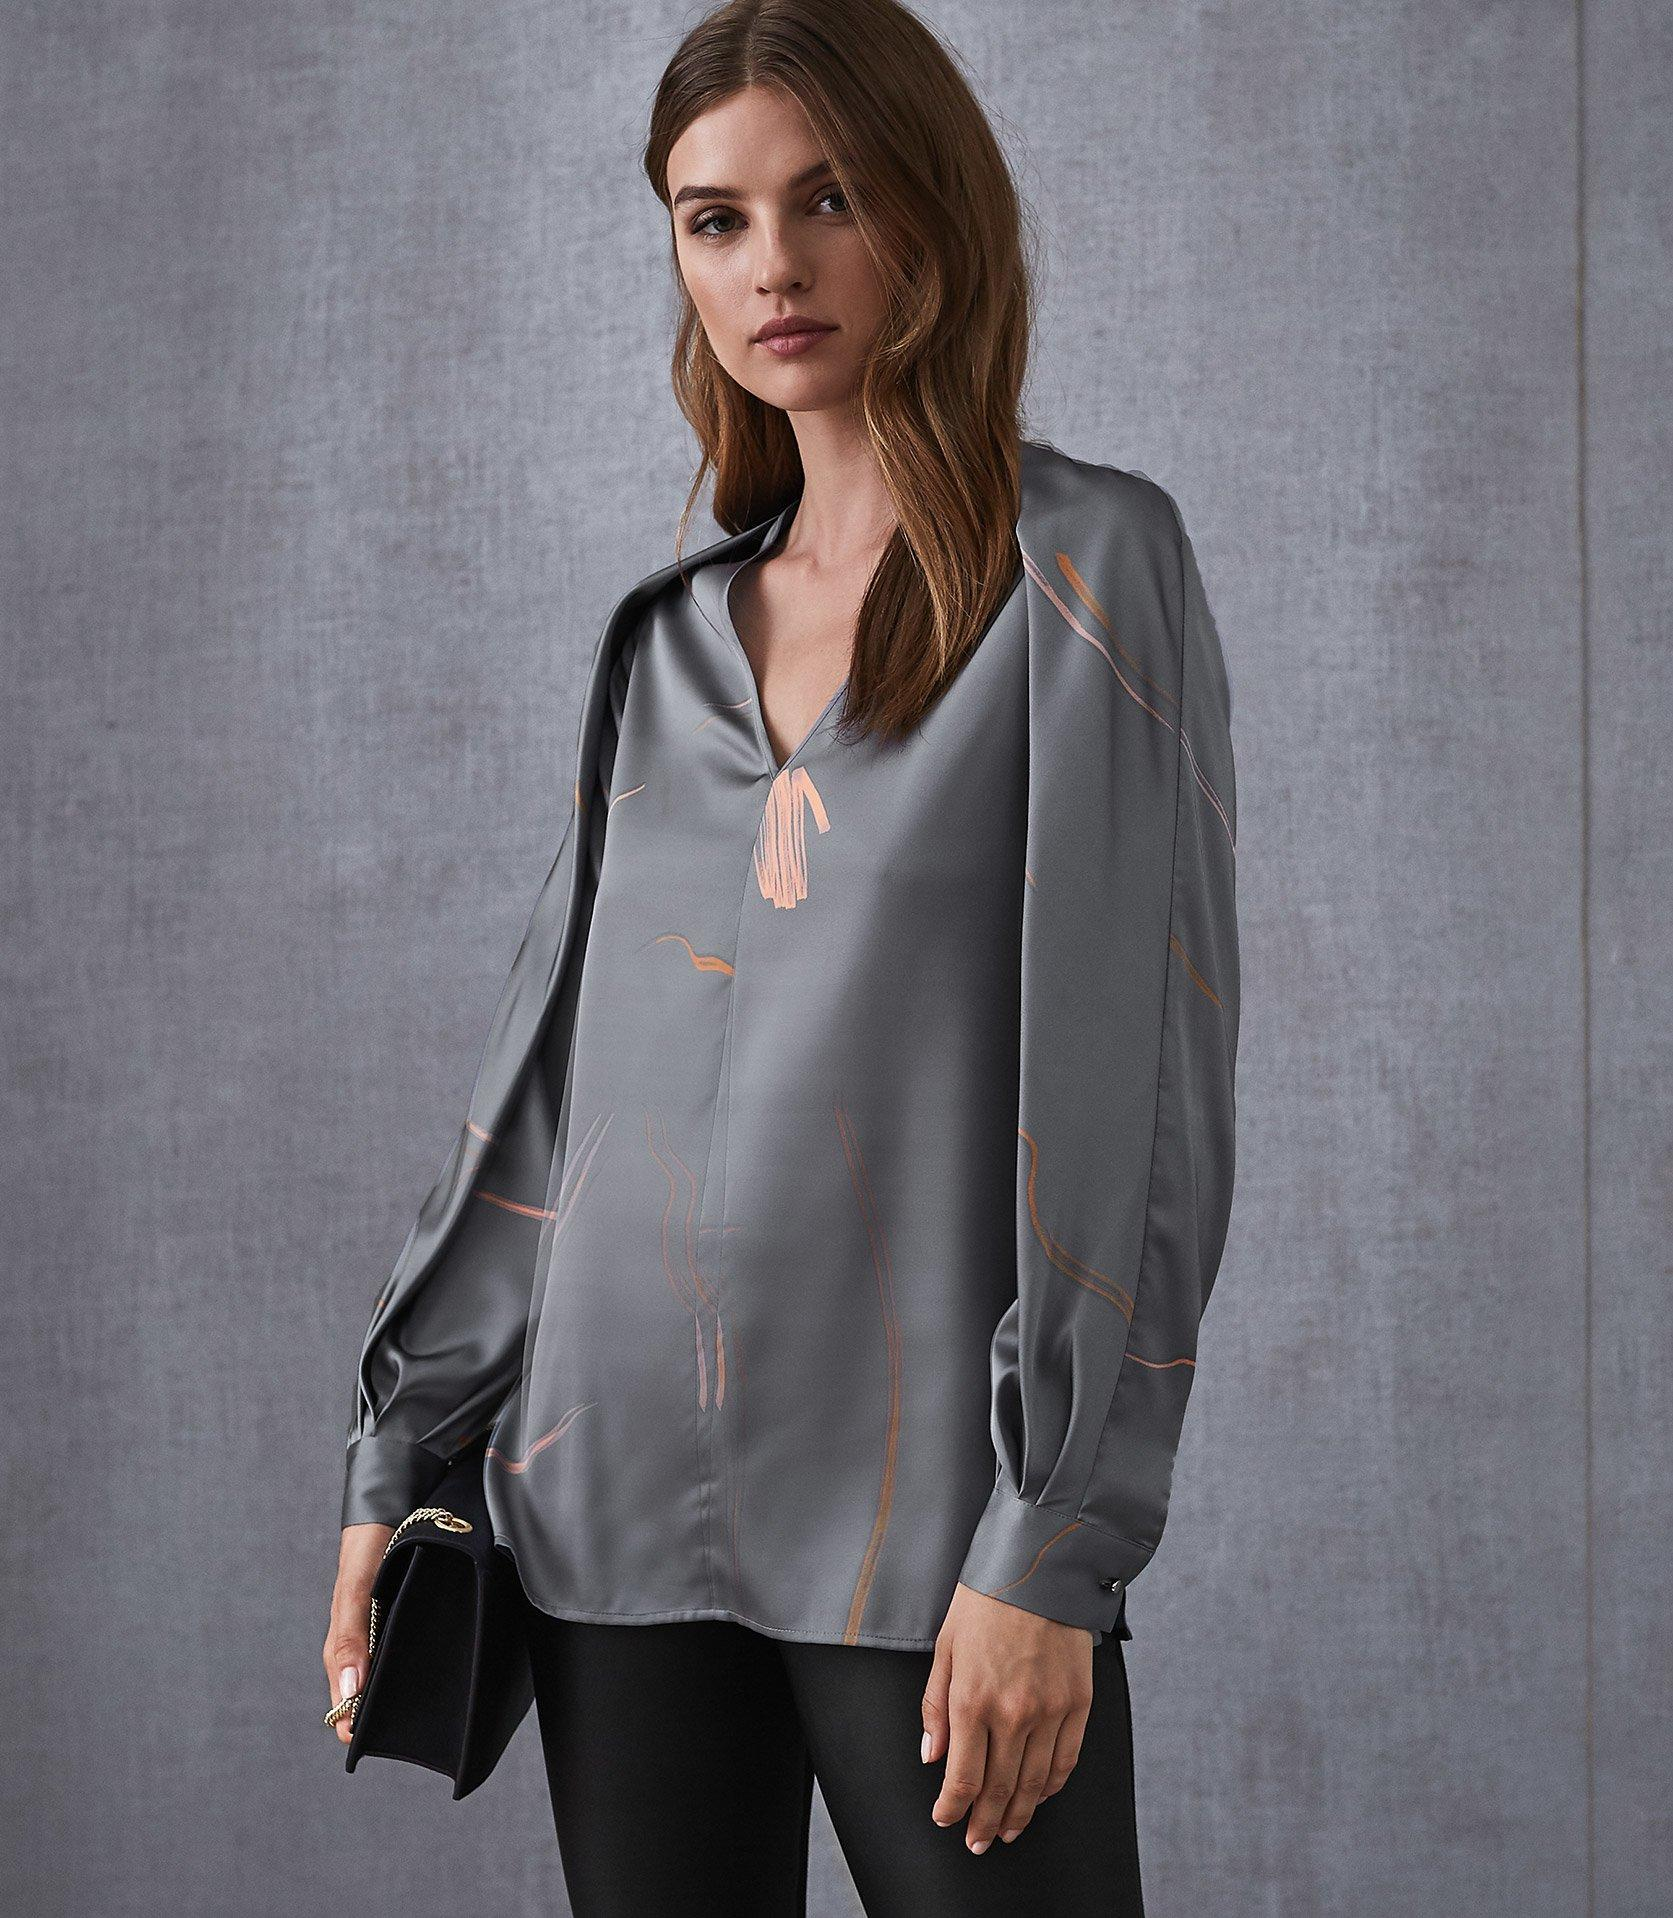 d3d43e61c870a7 Lyst - Reiss Pippy - Abstract Printed V-neck Blouse in Gray